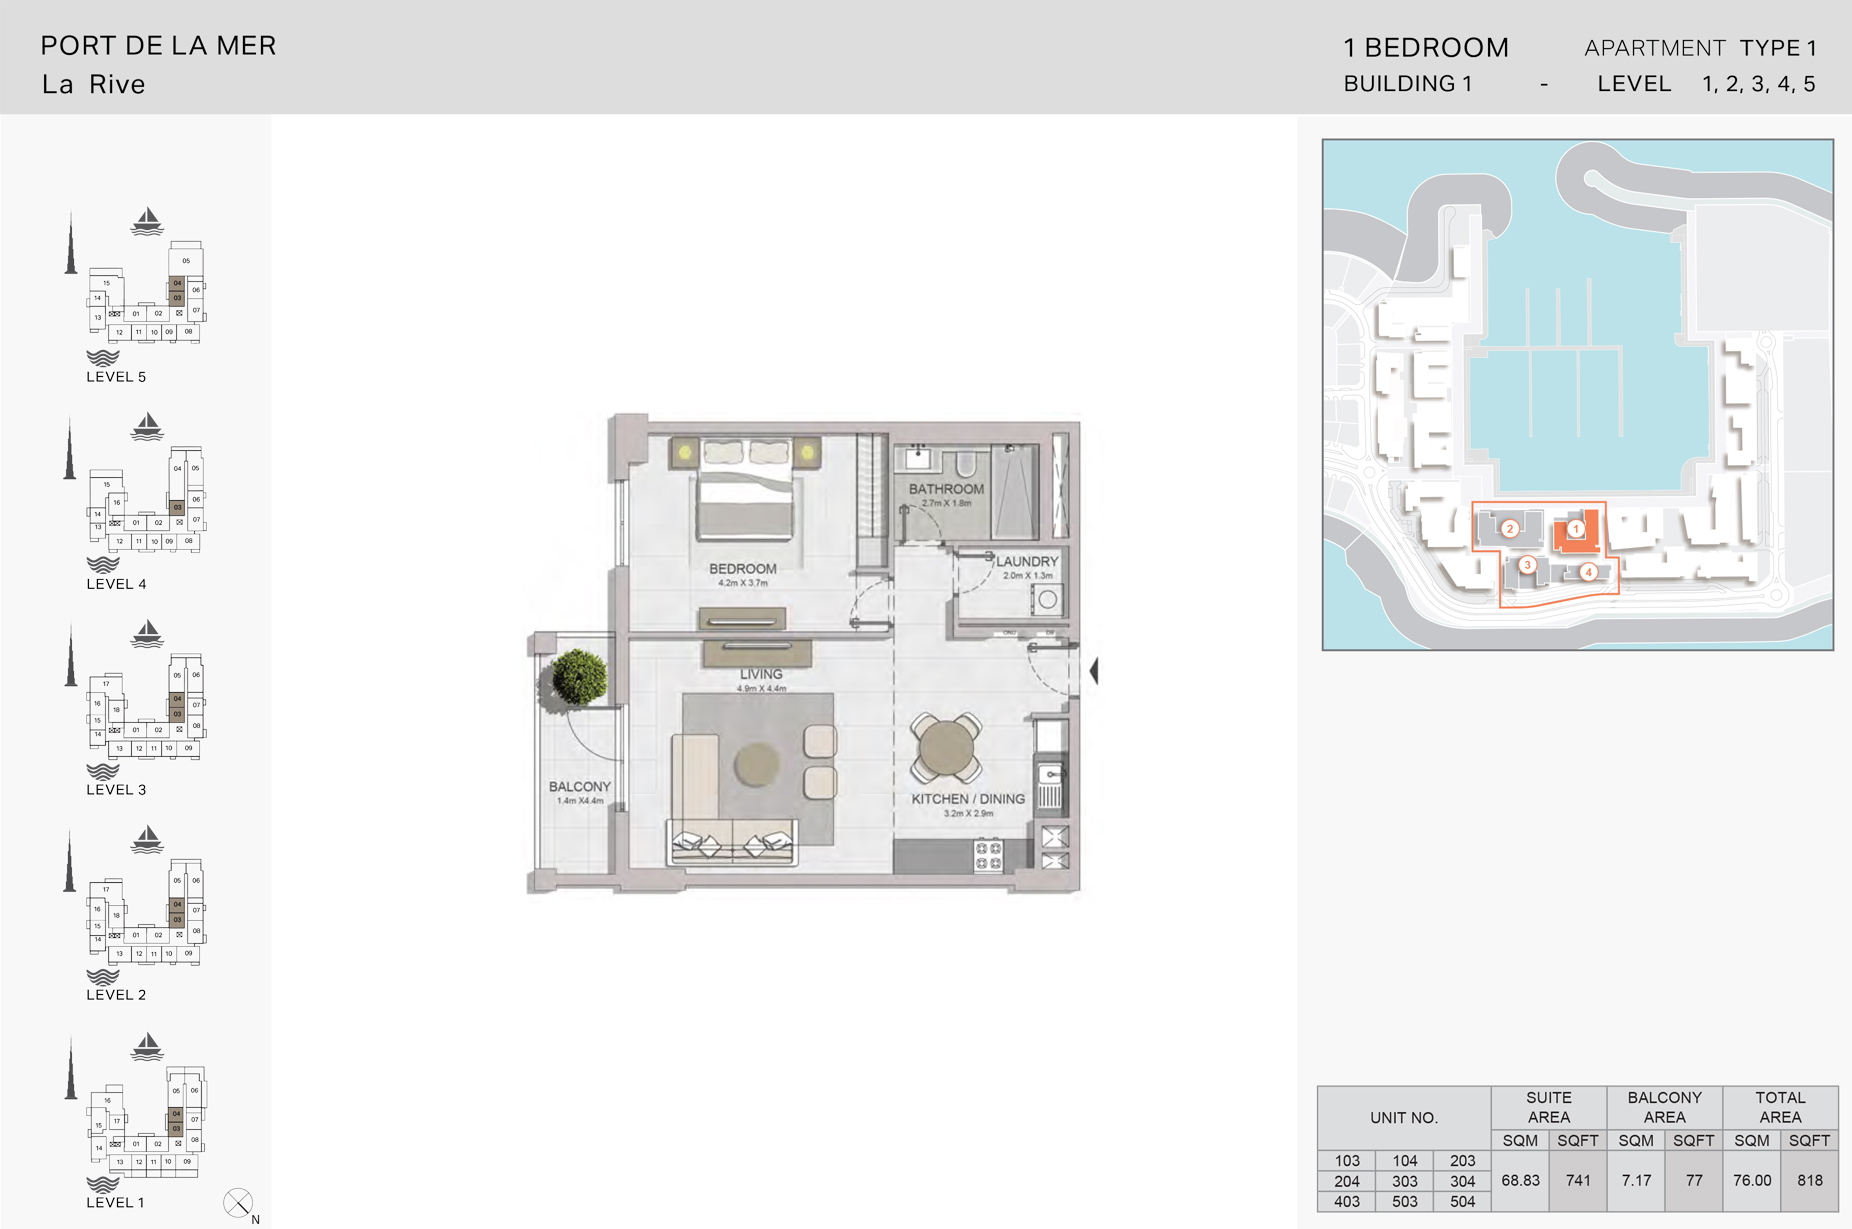 1 Bedroom Build1 Type1 Size 818 sqft